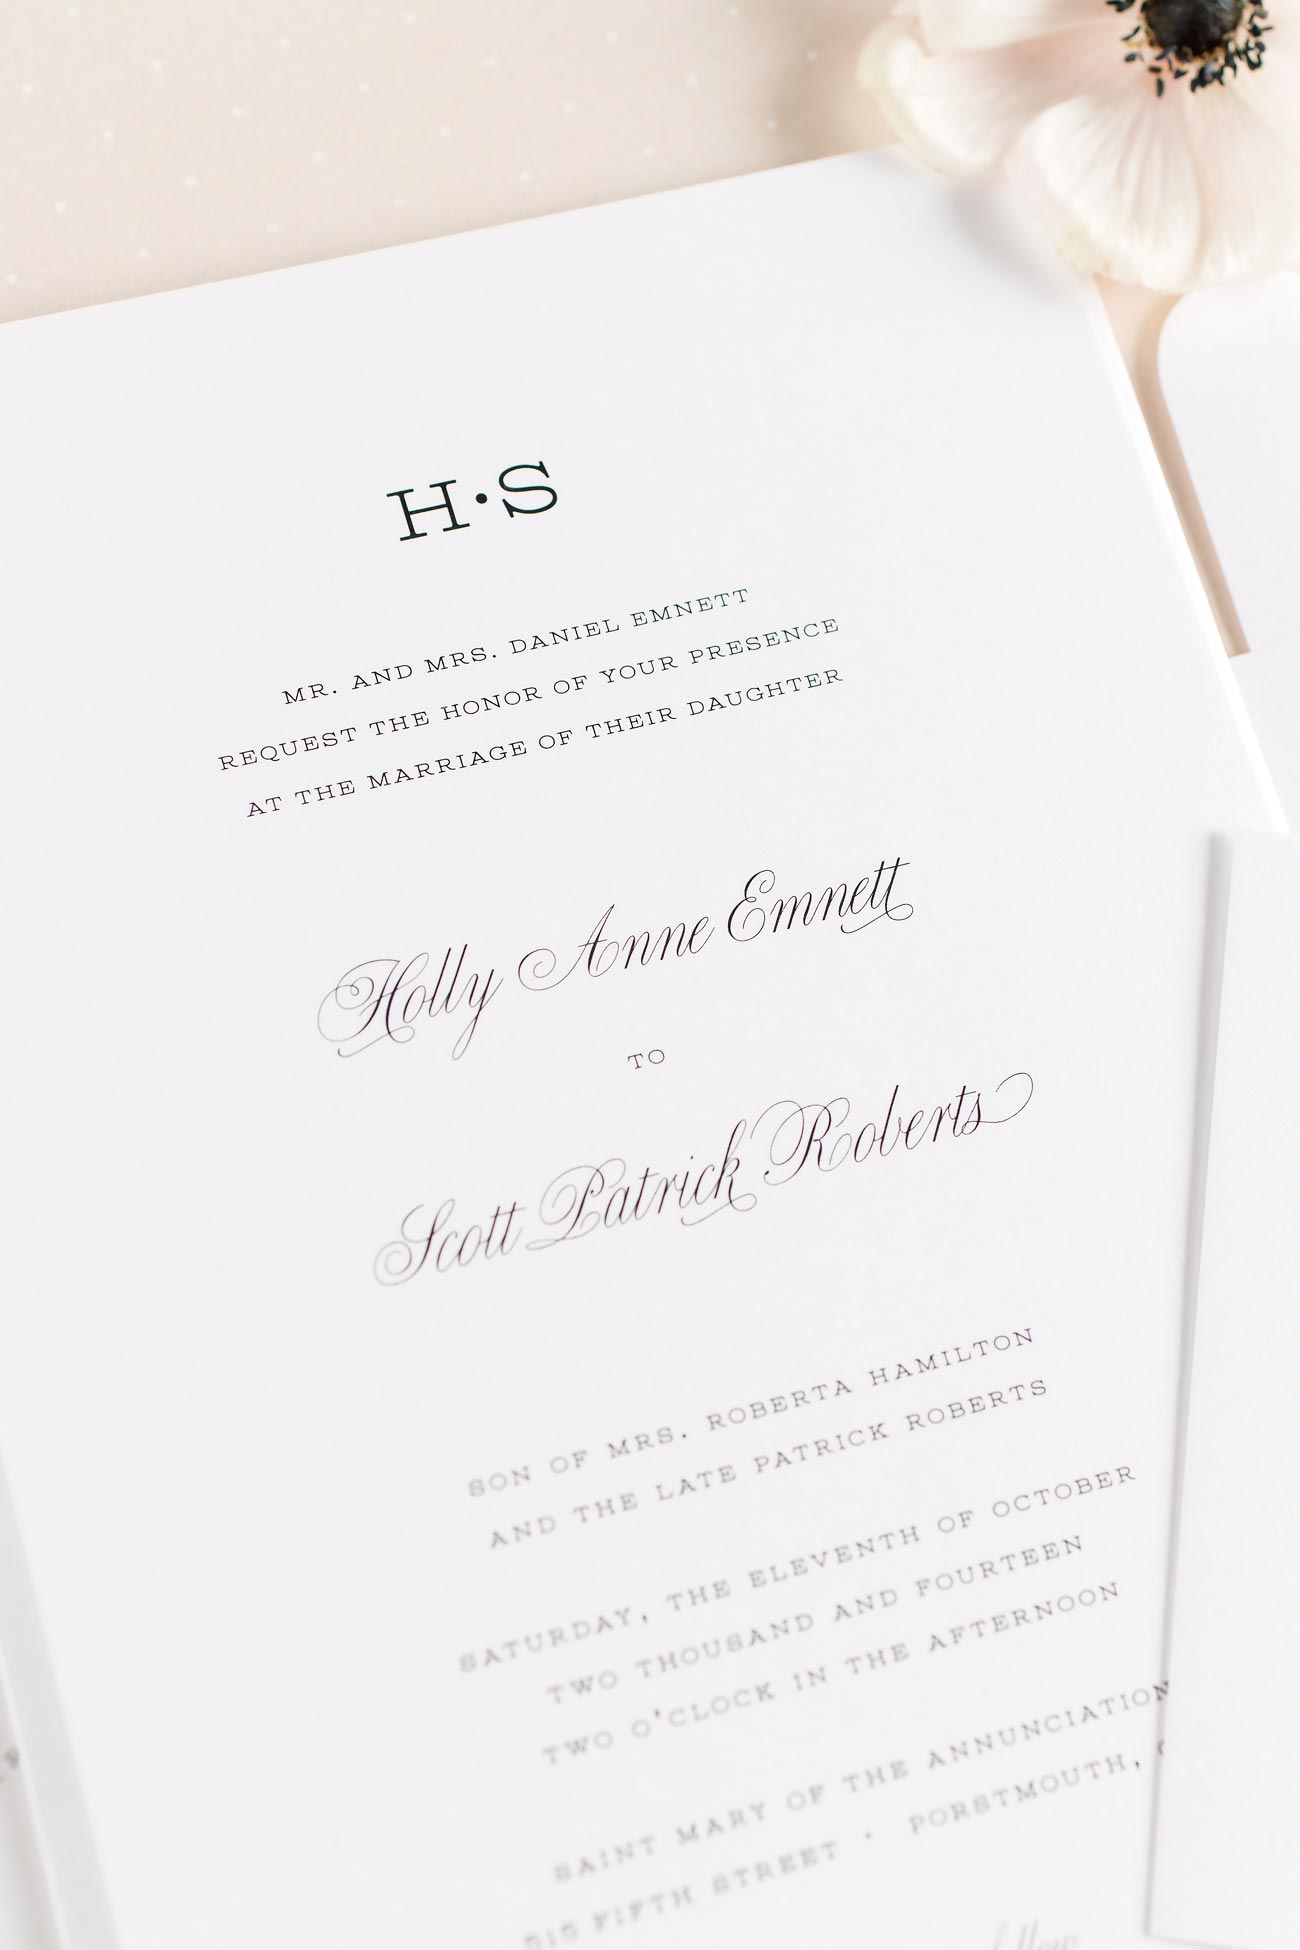 Romantic champagne wedding invitations with a monogram